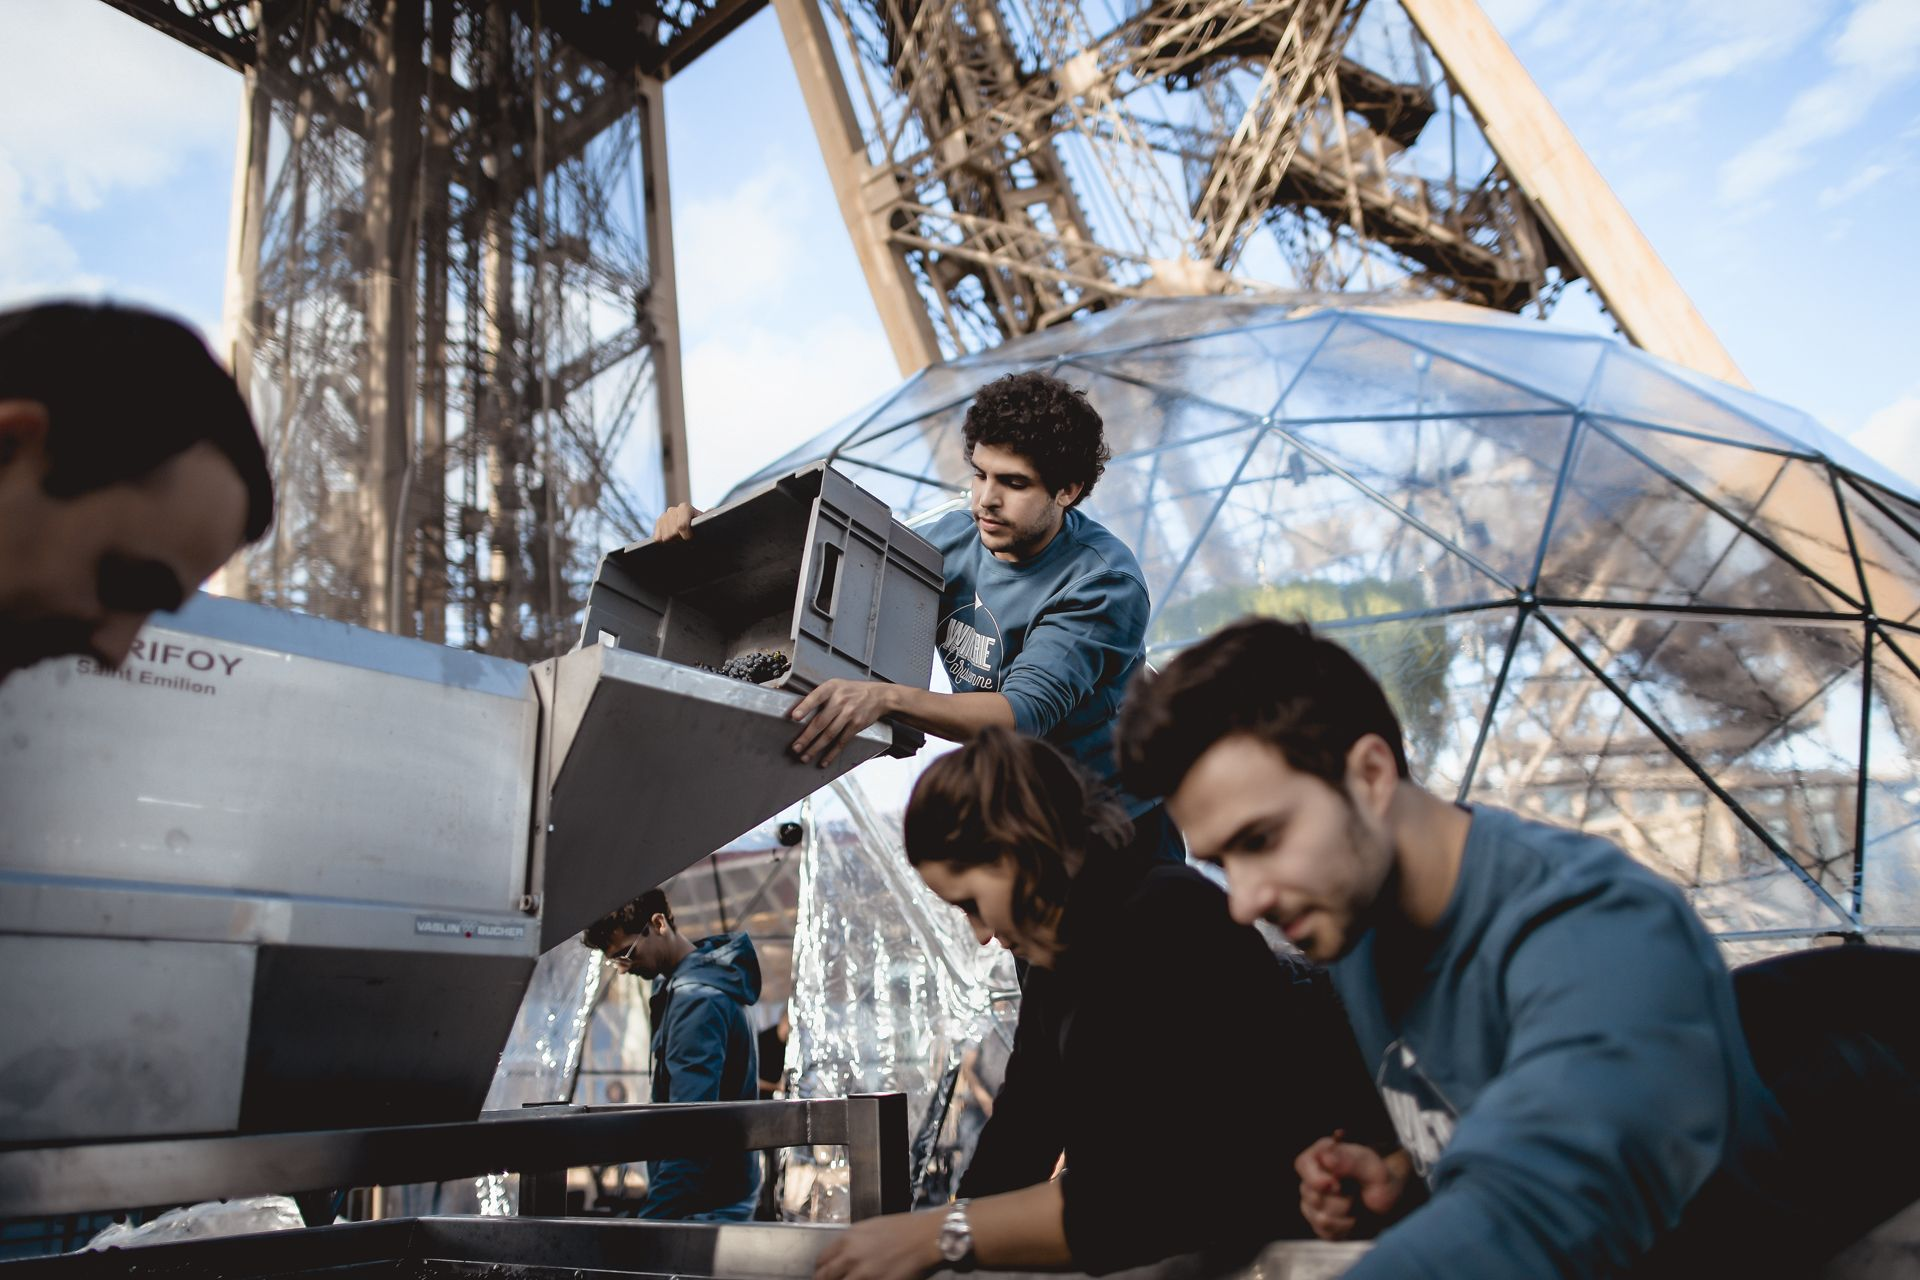 How The Eiffel Tower Has Been Turned Into A Temporary Winery